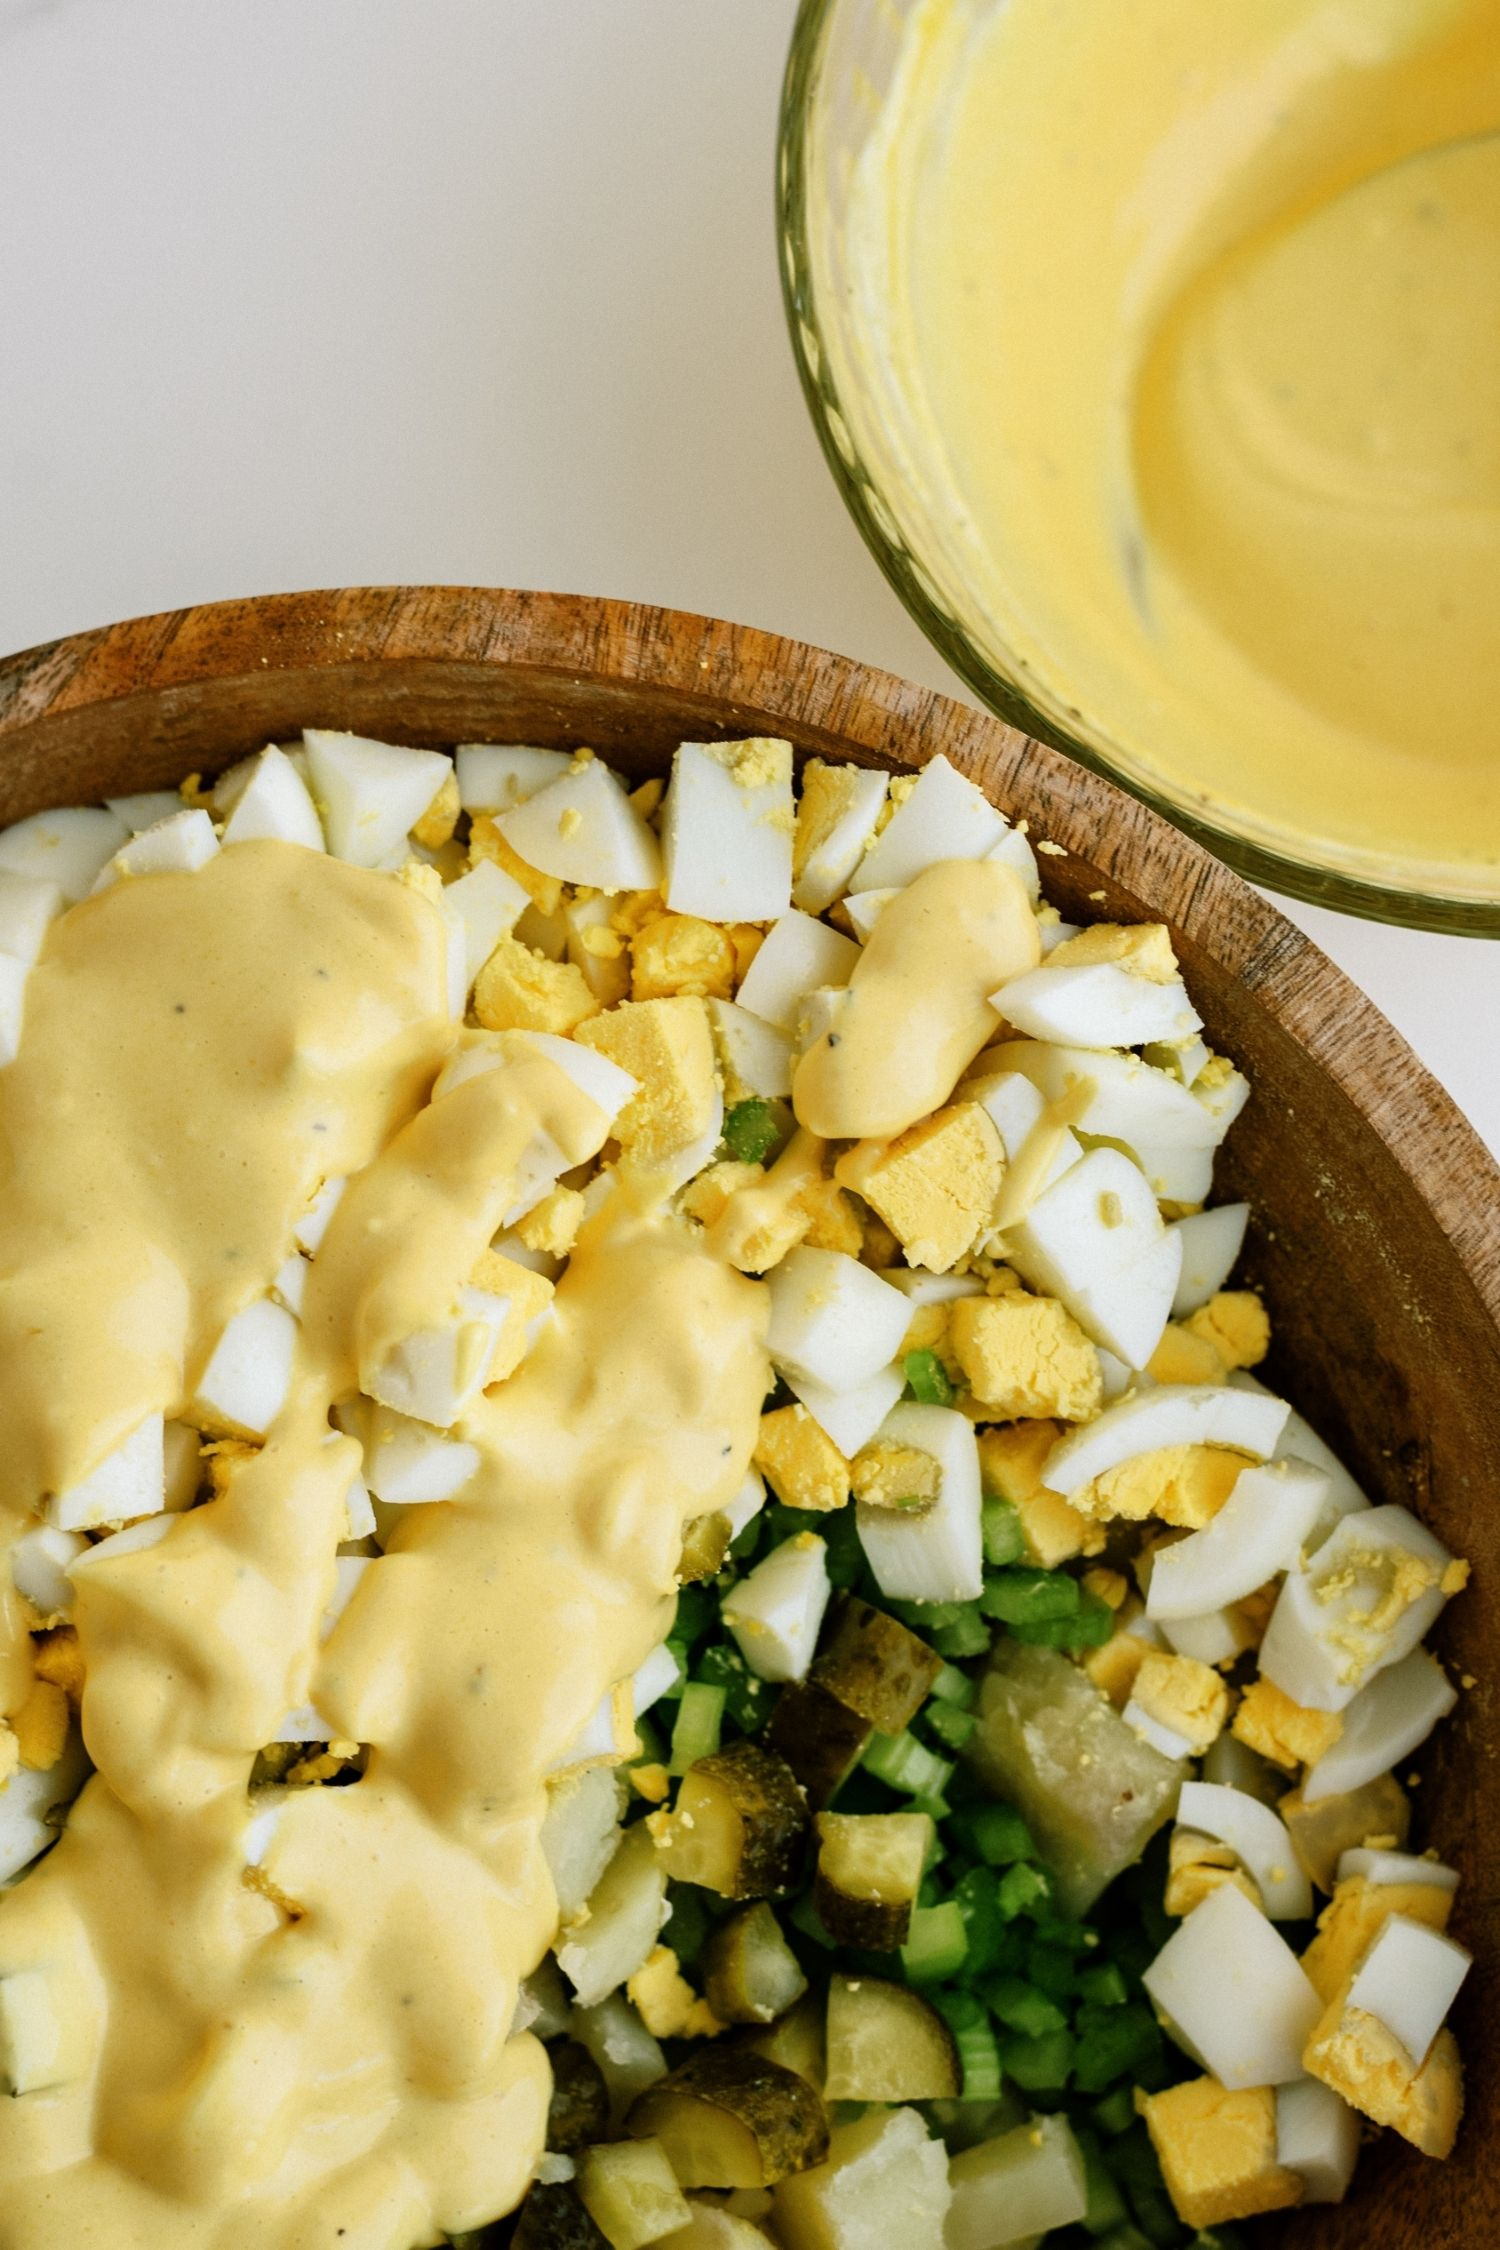 pouring mayo mixture on potato salad ingredients in a large bowl